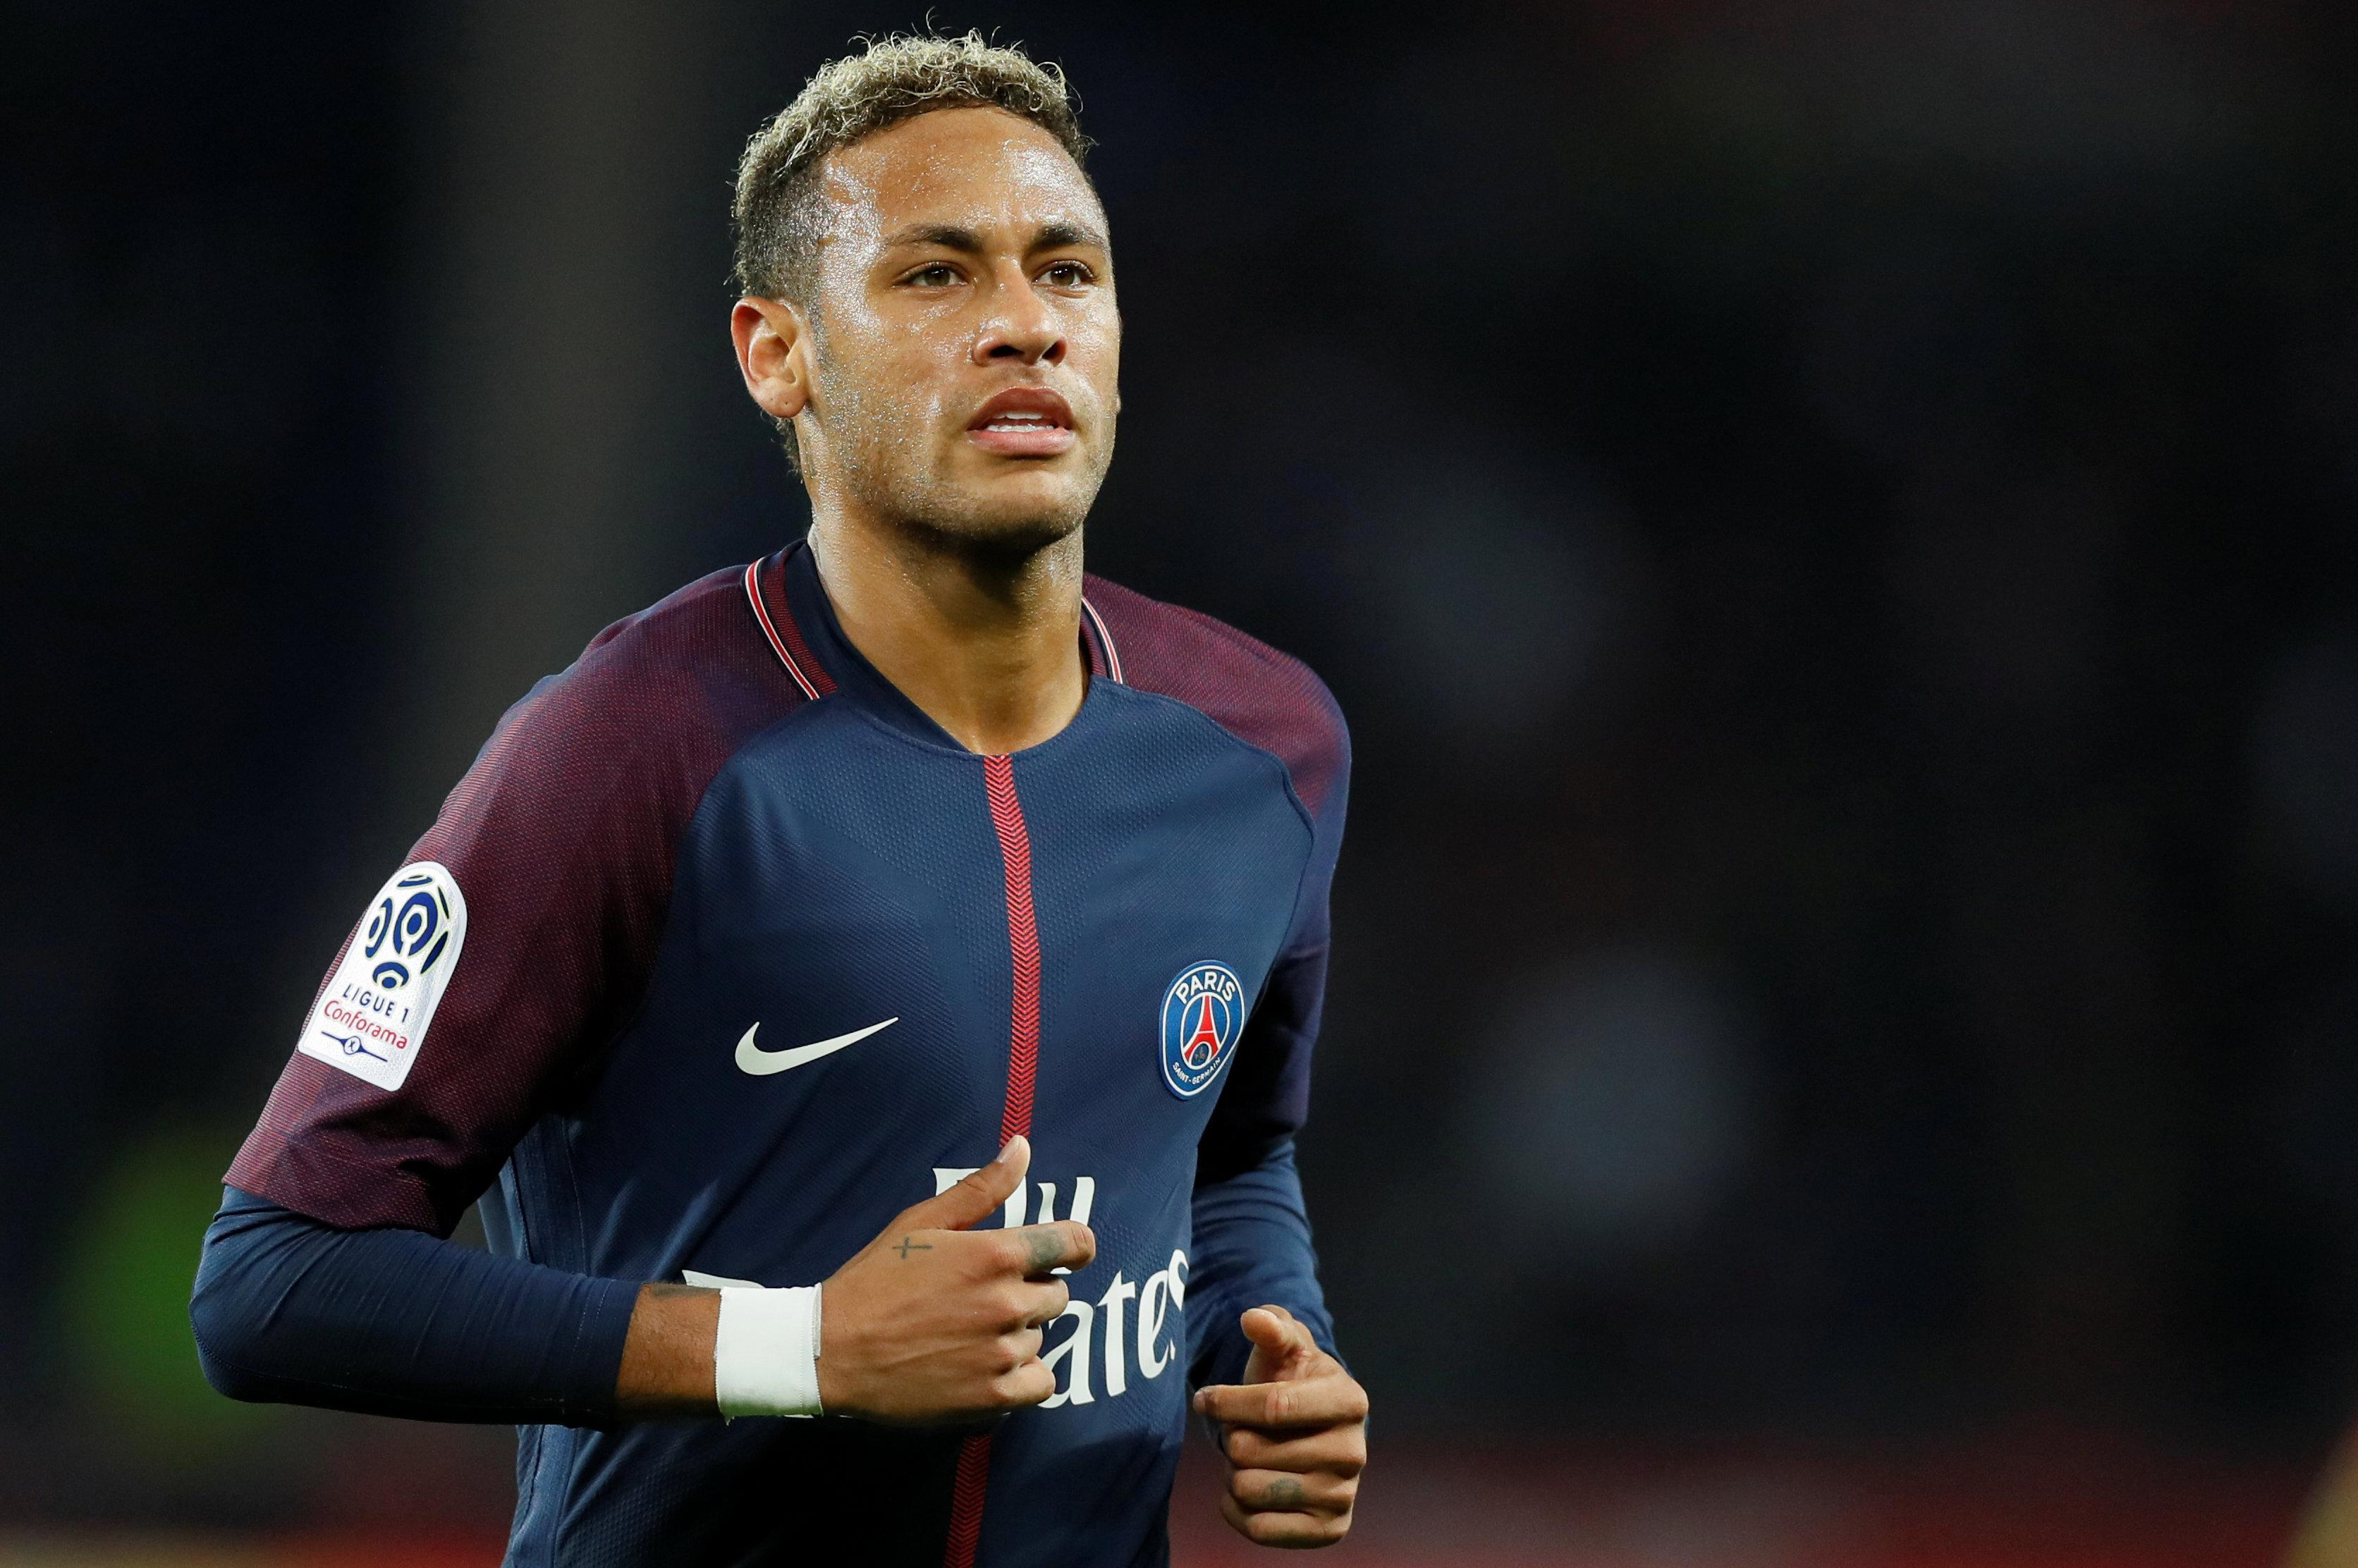 Neymar was unable to score his fifth Ligue 1 goal for the home side